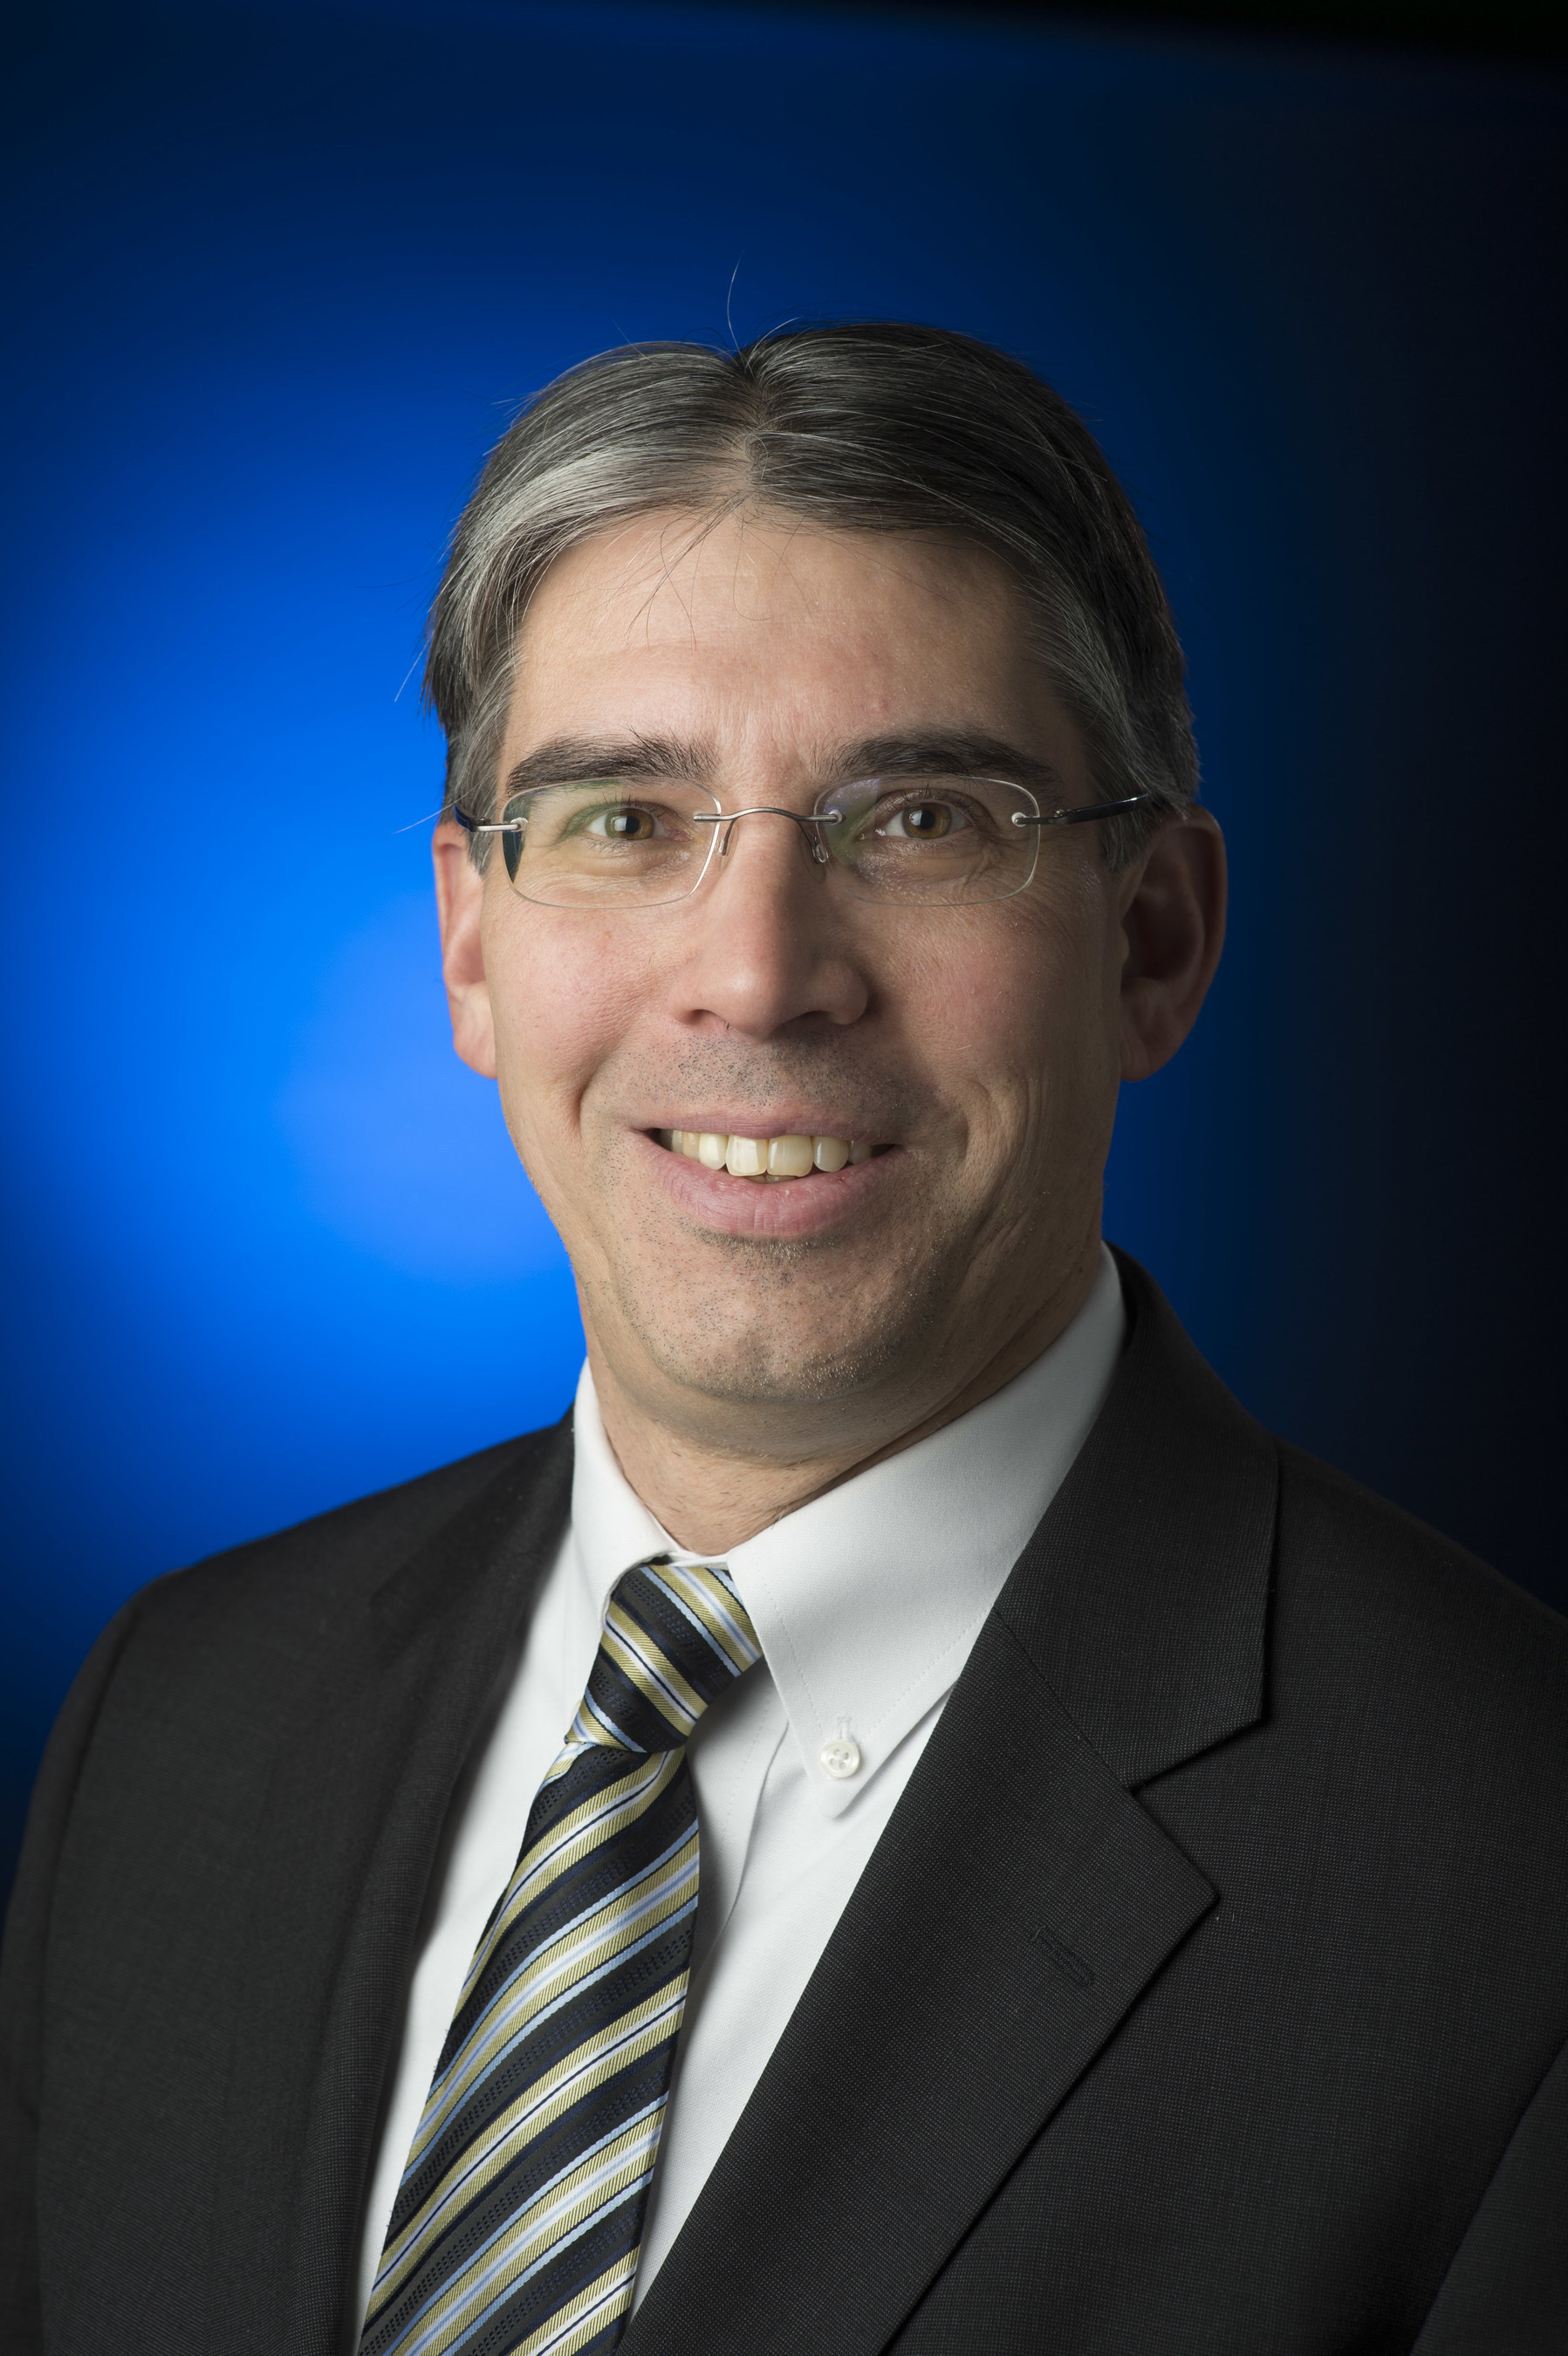 Ball Aerospace & Technologies Corp. has hired Michael Gazarik as Director for its Office of Technology on the Boulder campus effective March 2. Dr. Gazarik will lead the alignment of Ball's technology development resources with business development and growth strategies.